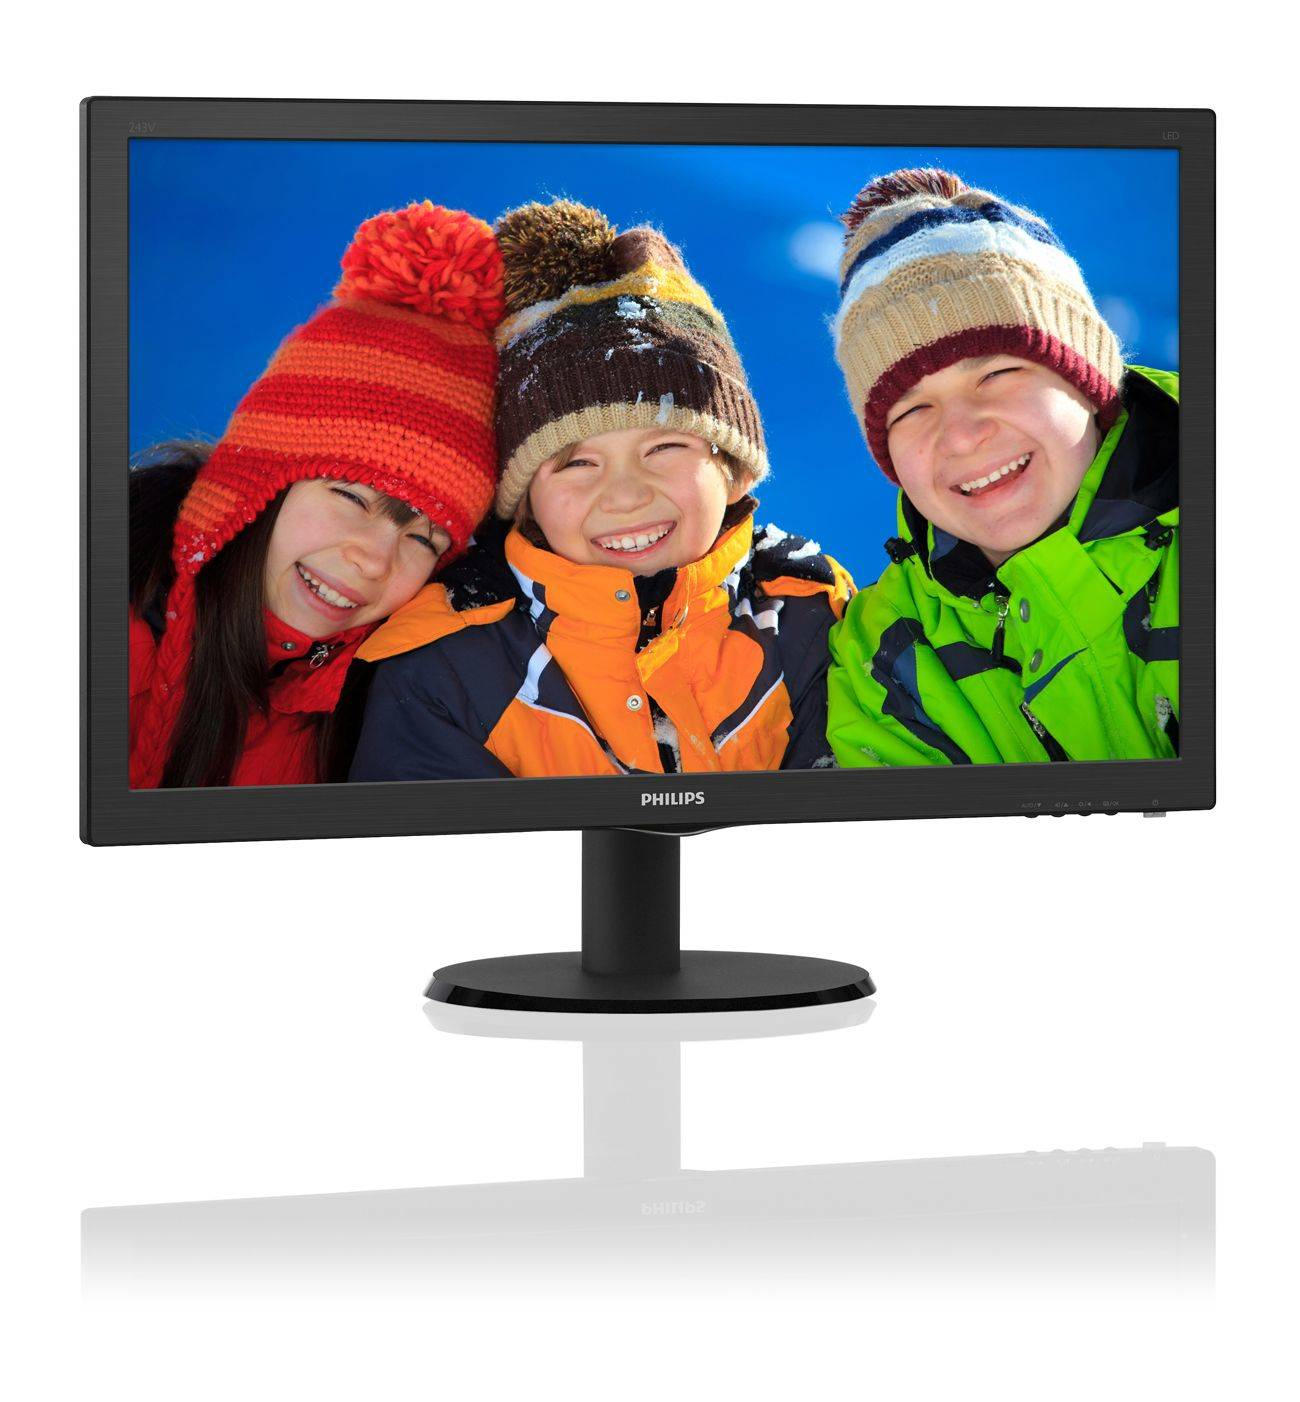 Philips LCD monitor with SmartControl Lite 243V5QHAB/00